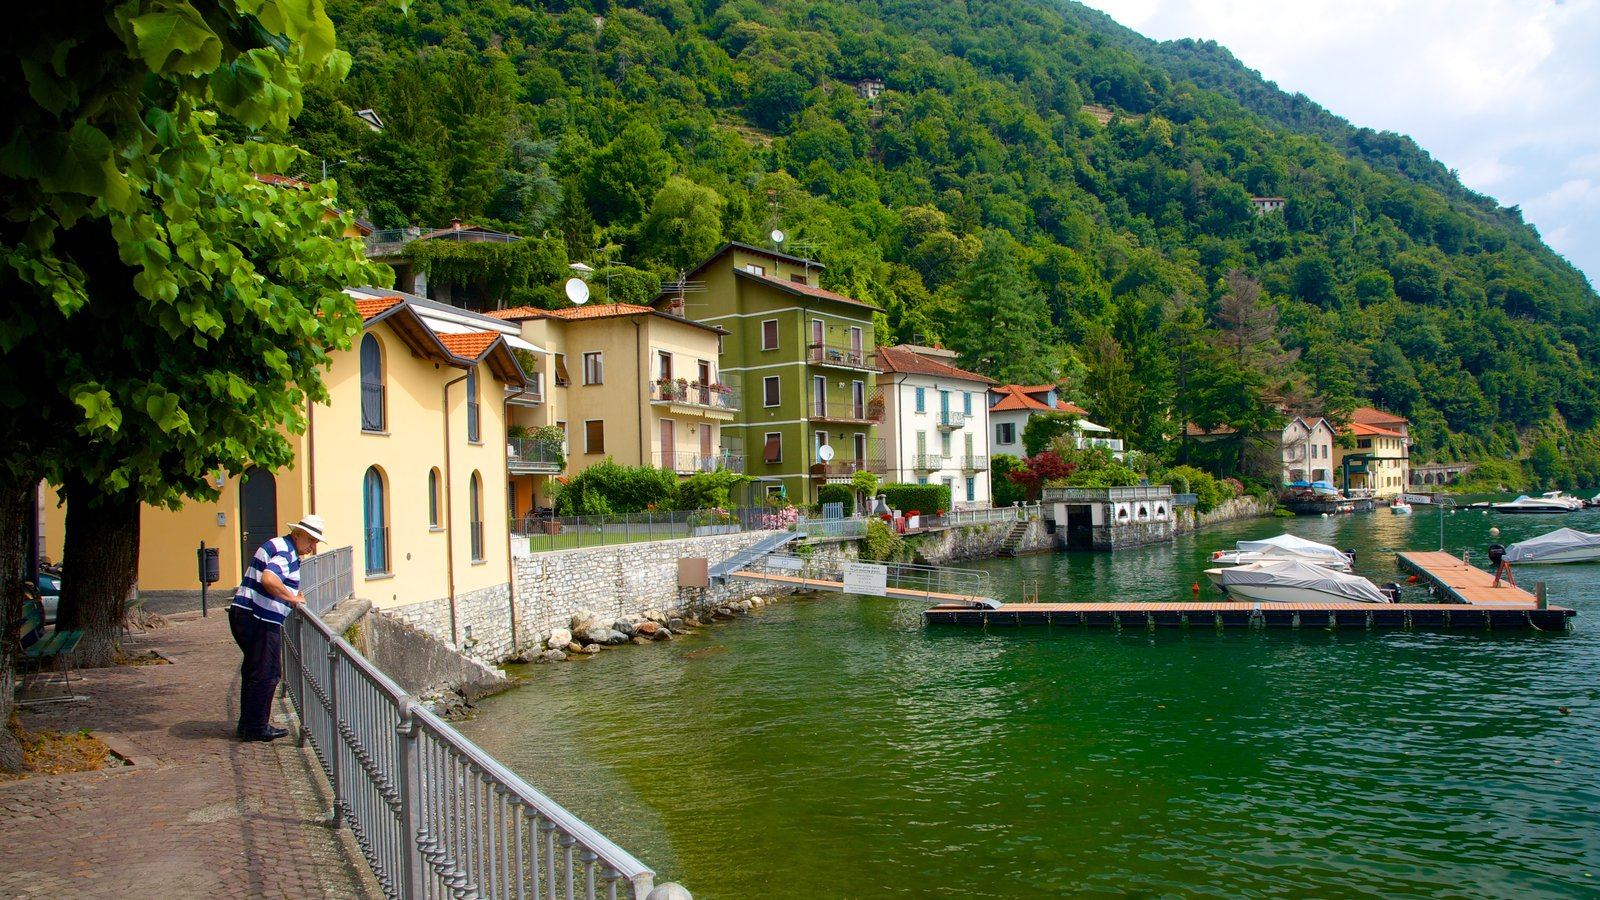 Argegno which includes a house, a marina and a coastal town